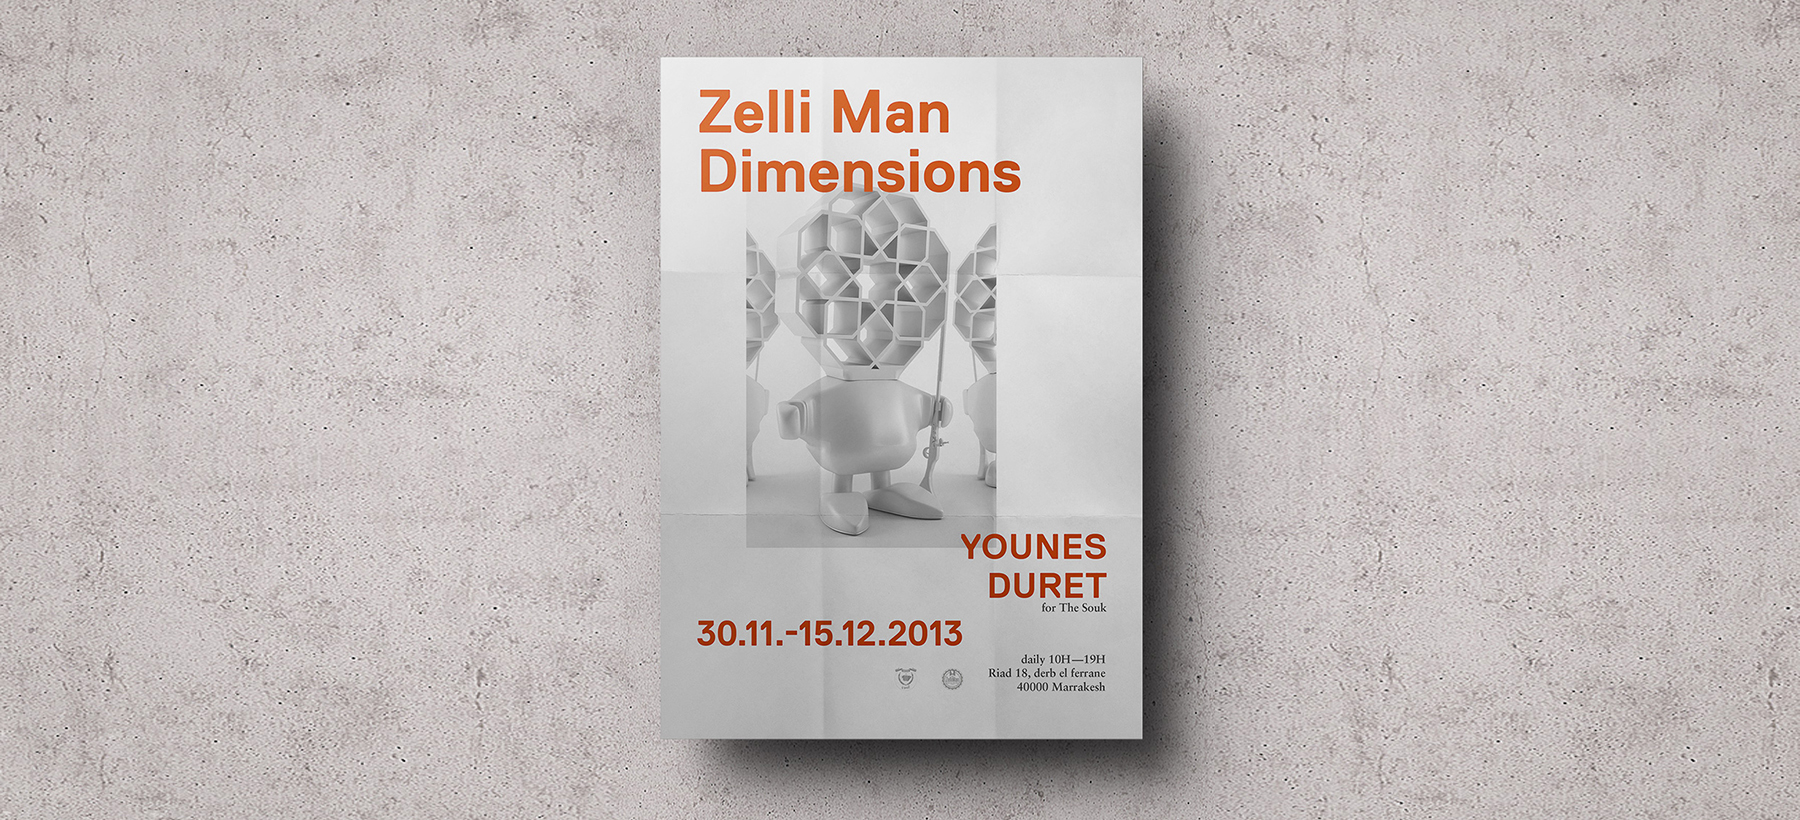 YounesDuret_ZelliMan_05_new